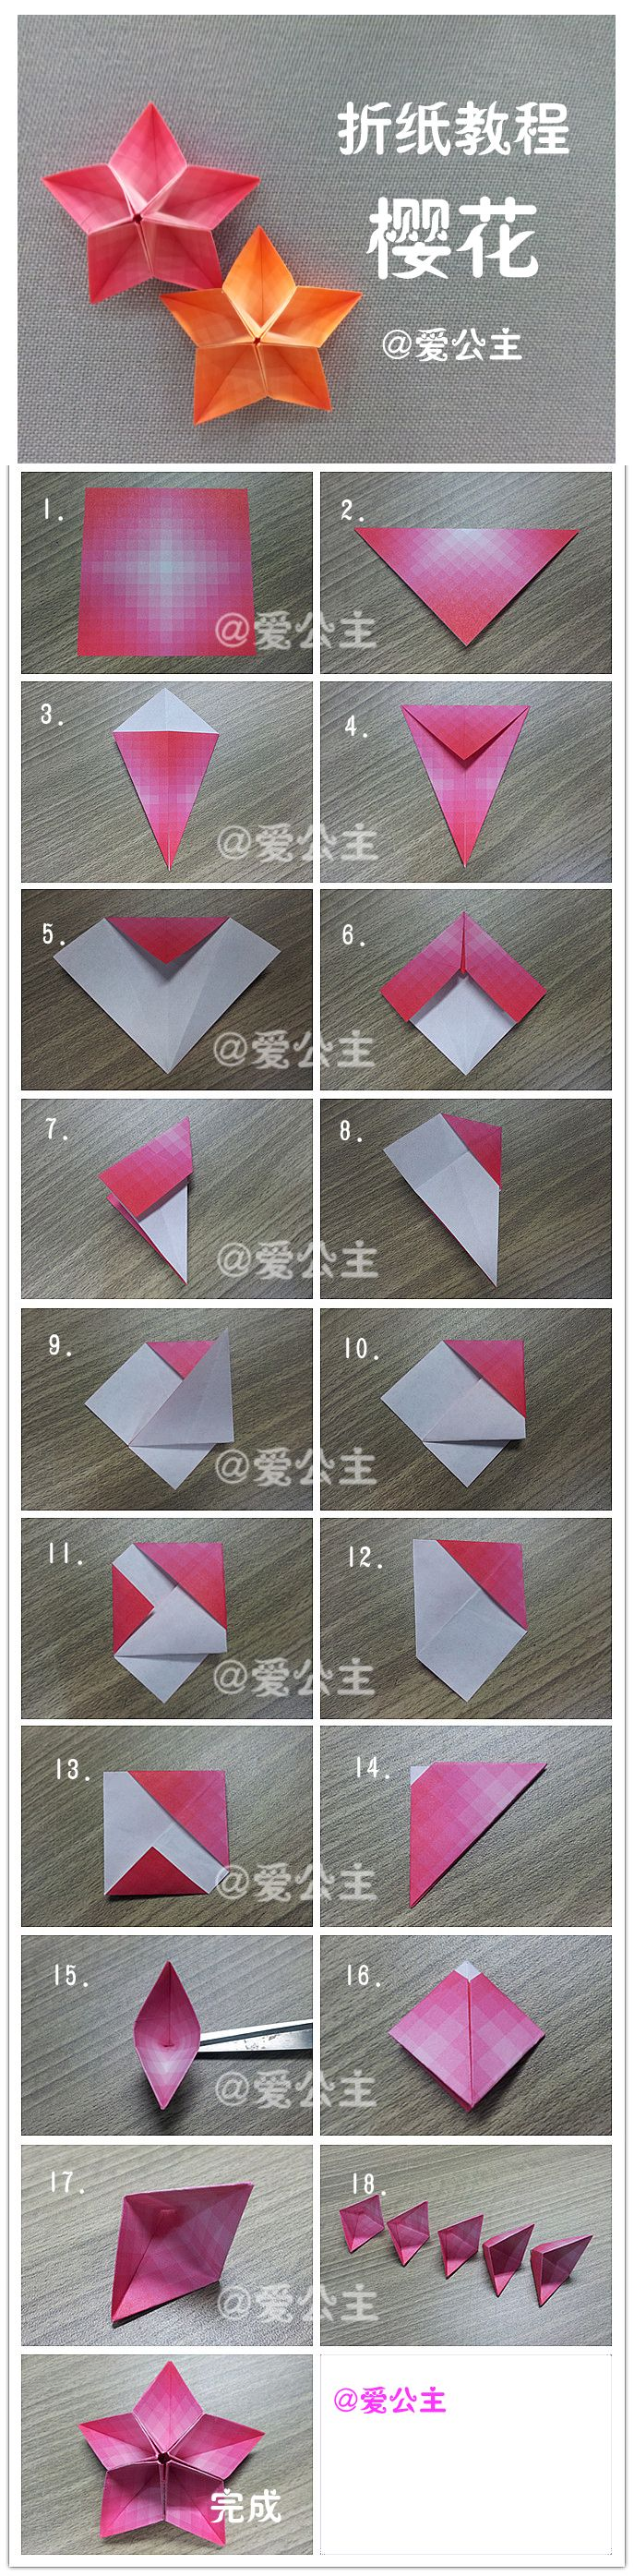 Origami Diy Flower Christmas Pinterest Origami Flower And Craft